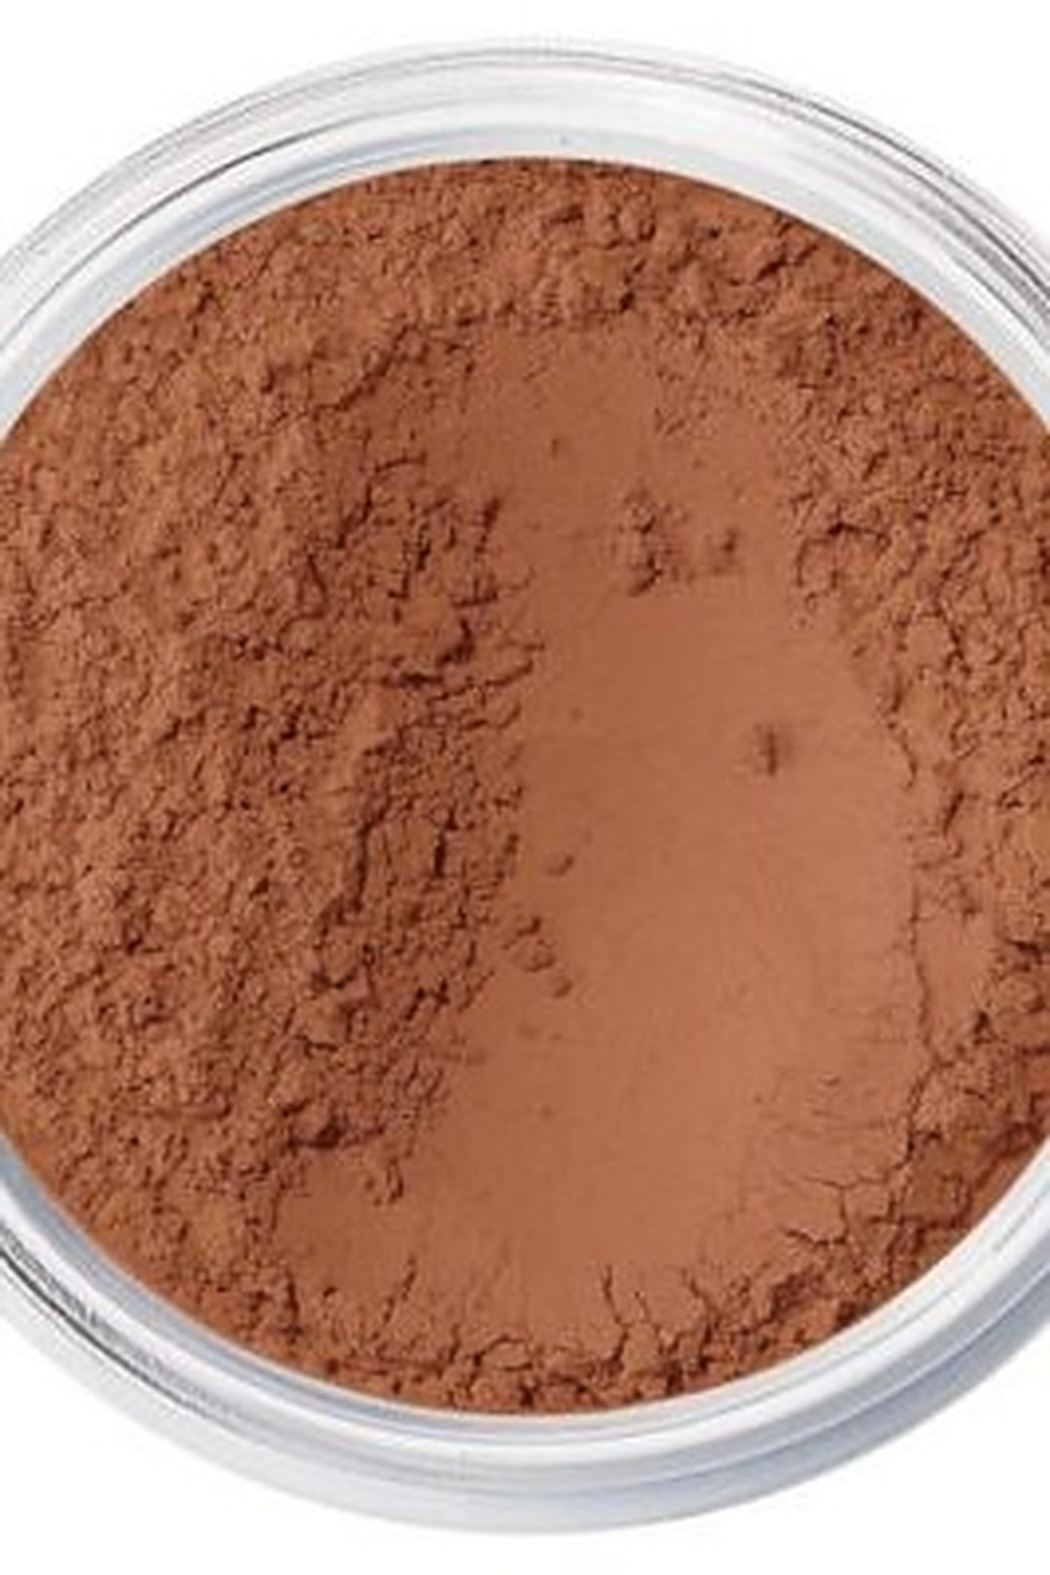 bareMinerals WARMTH ALL-OVER FACE COLOR BRONZER Loose Bronzing Powder - Main Image